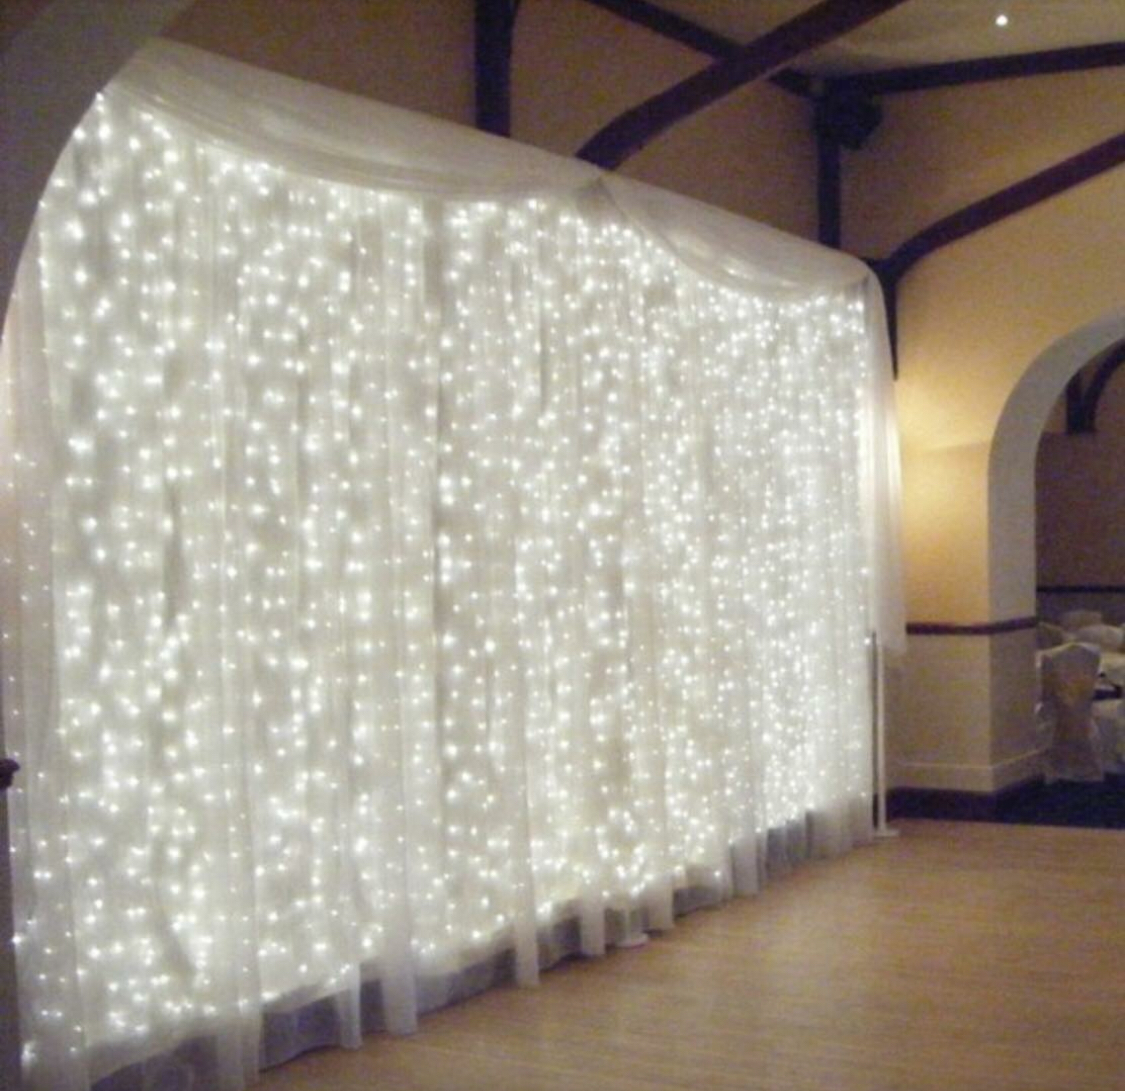 304 LED 10 x 10 Lights and Curtain Wedding Backdrop $30-$190  sold separately